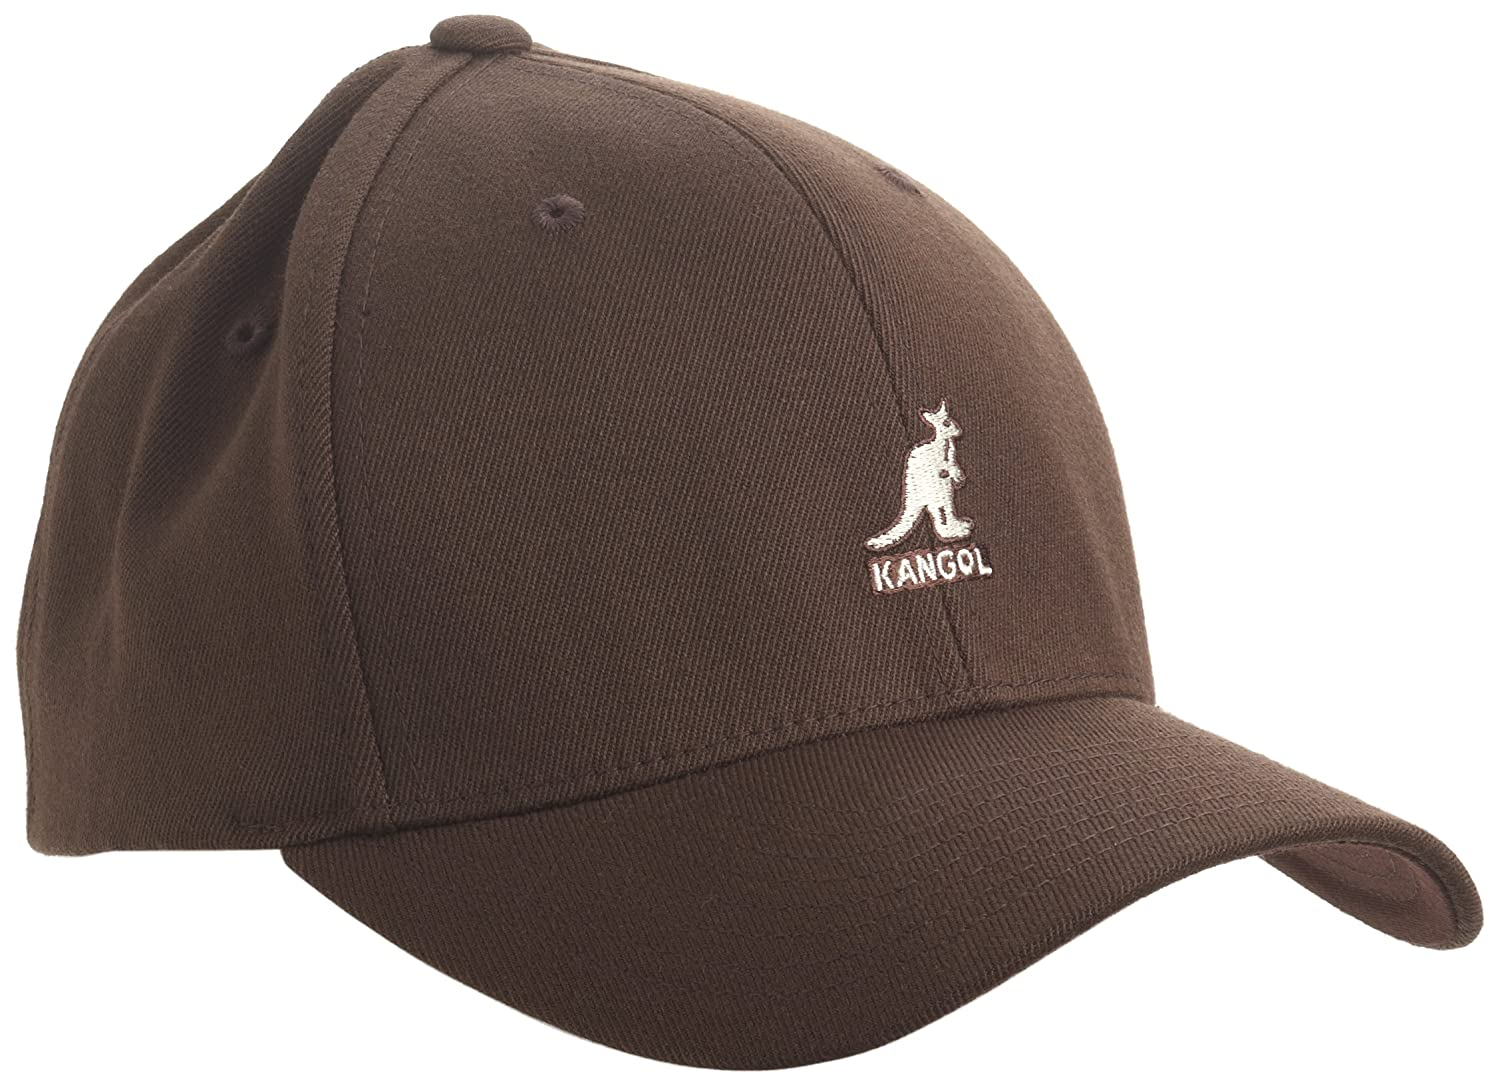 Kangol Men's Wool Flex-Fit Baseball Cap Kangol Men's Headwear 8650BC